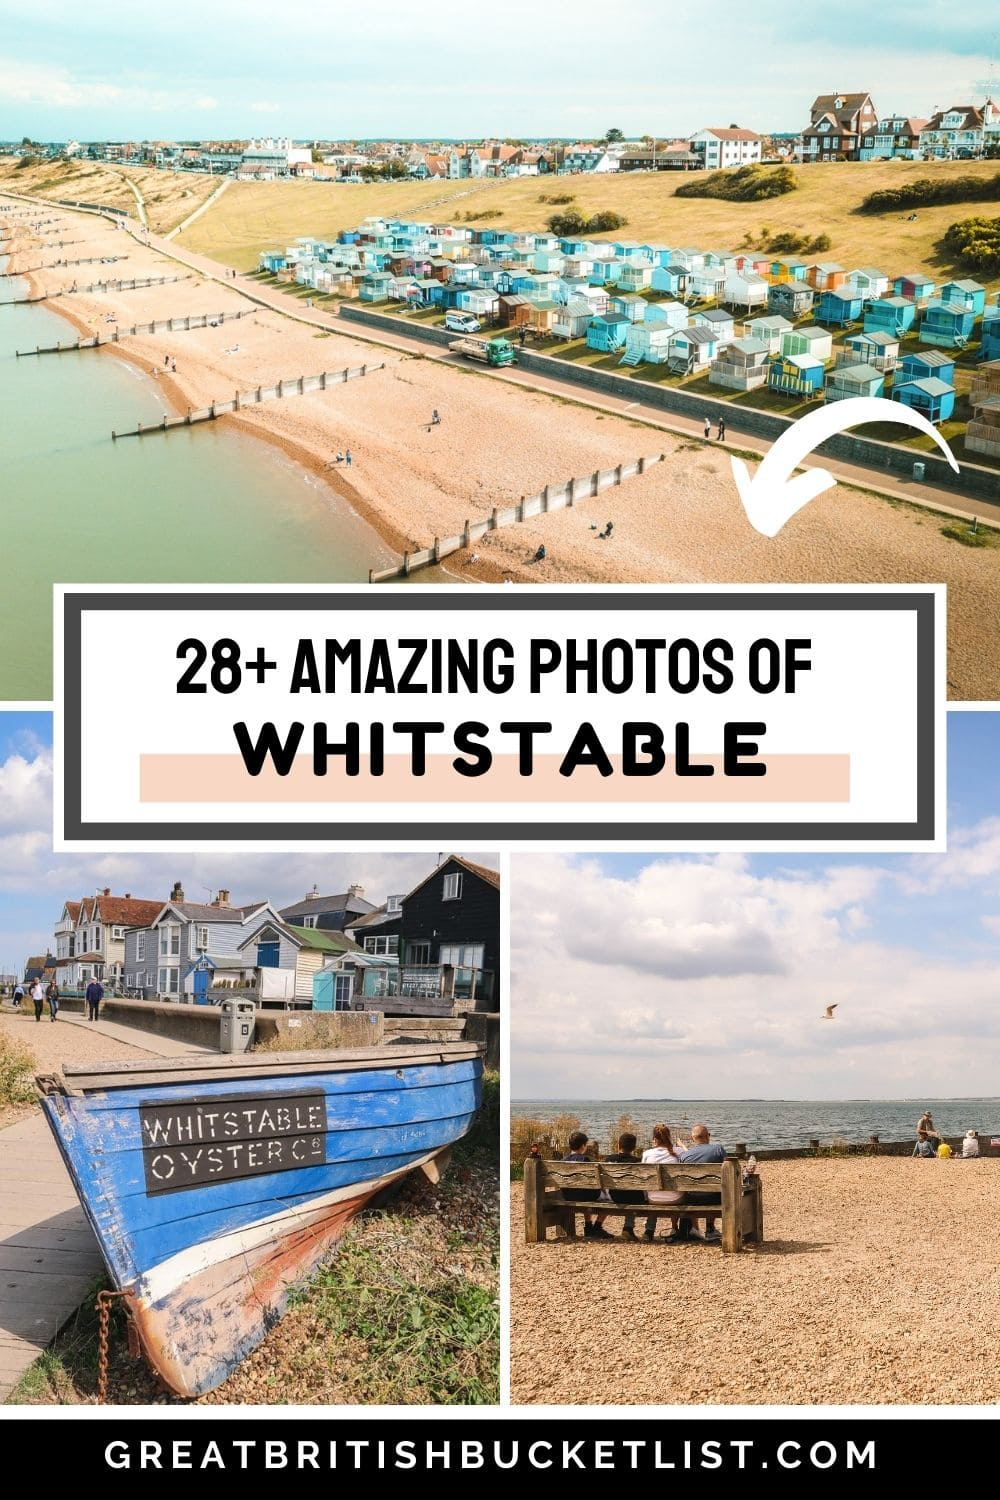 Photos of Whitstable